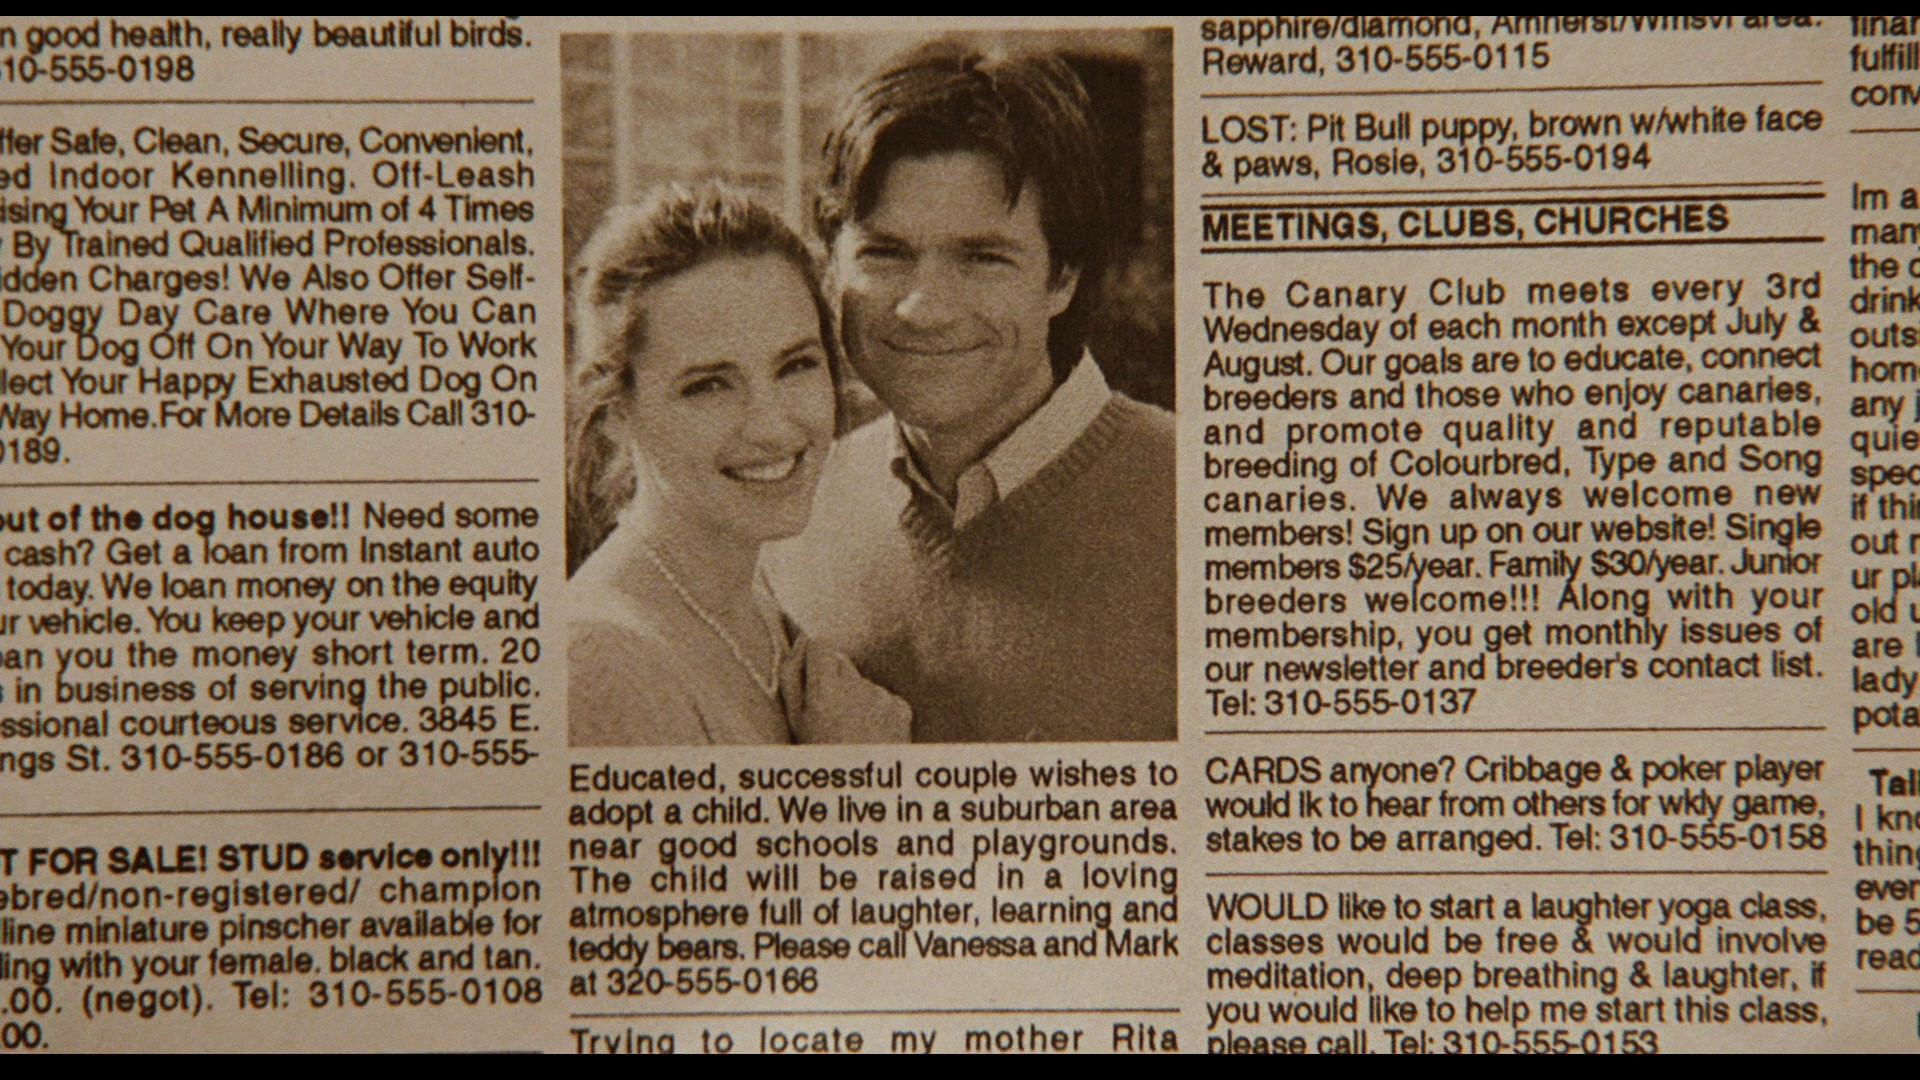 Close-up of a sepia-toned newspaper with a photograph of Mark and Vanessa Loring in the center.